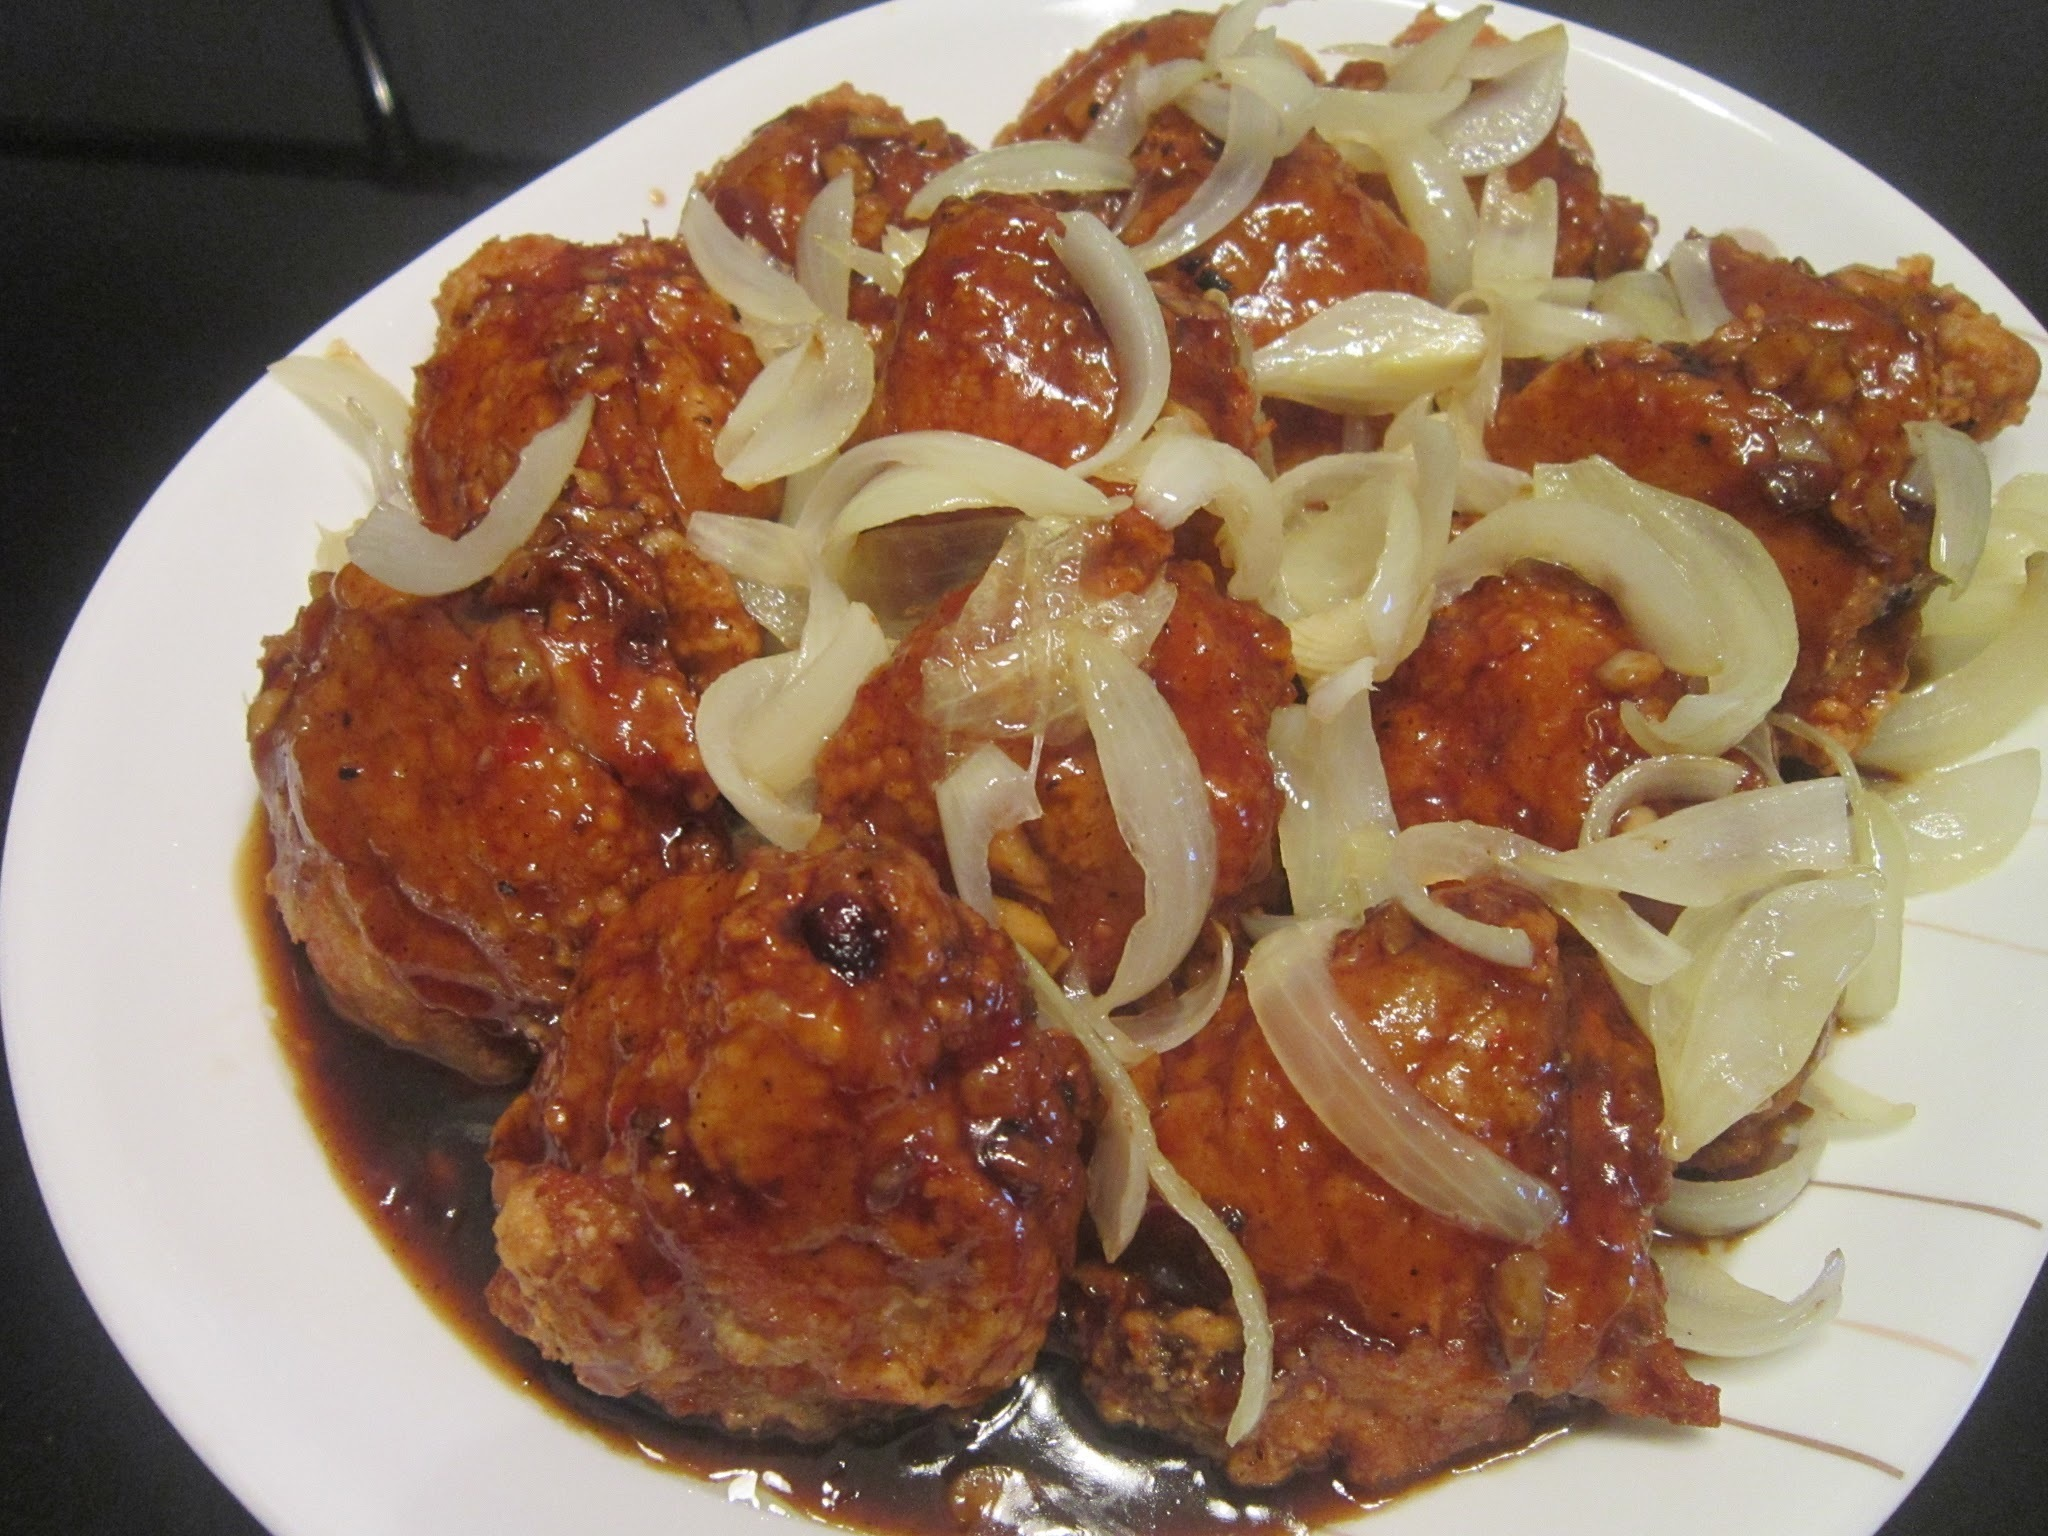 CRISPY CHICKEN with SPICY BARBEQUE GLAZE